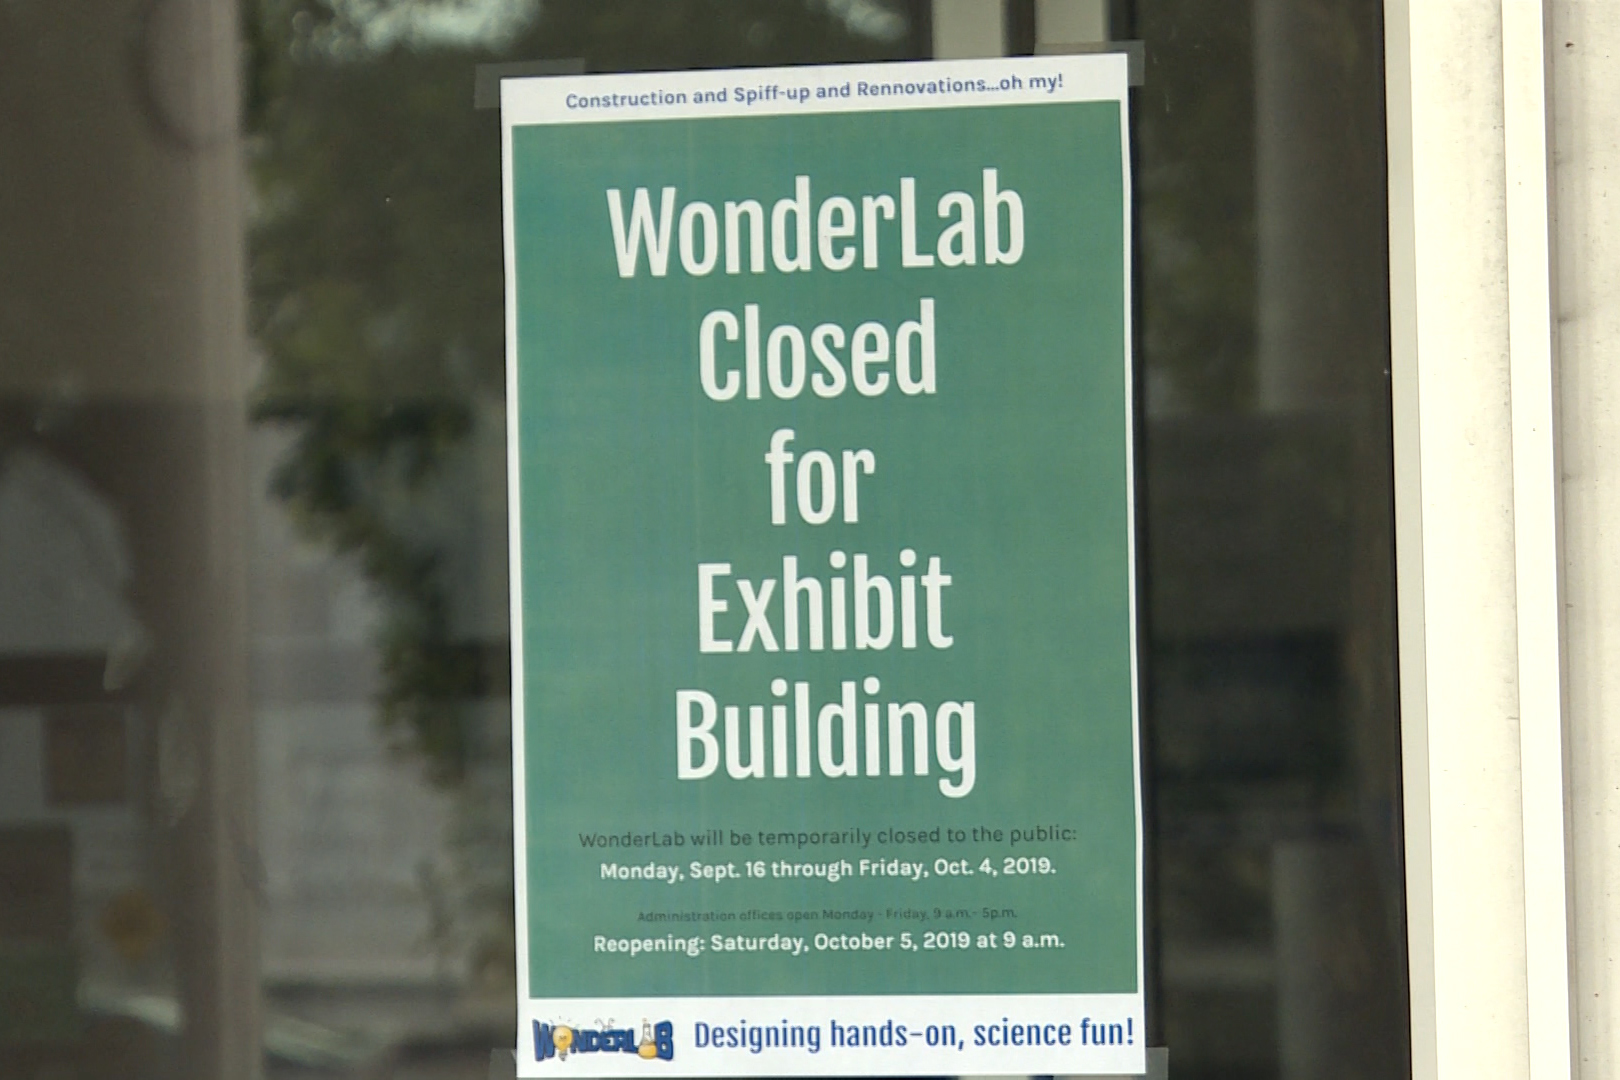 WonderLab Closed